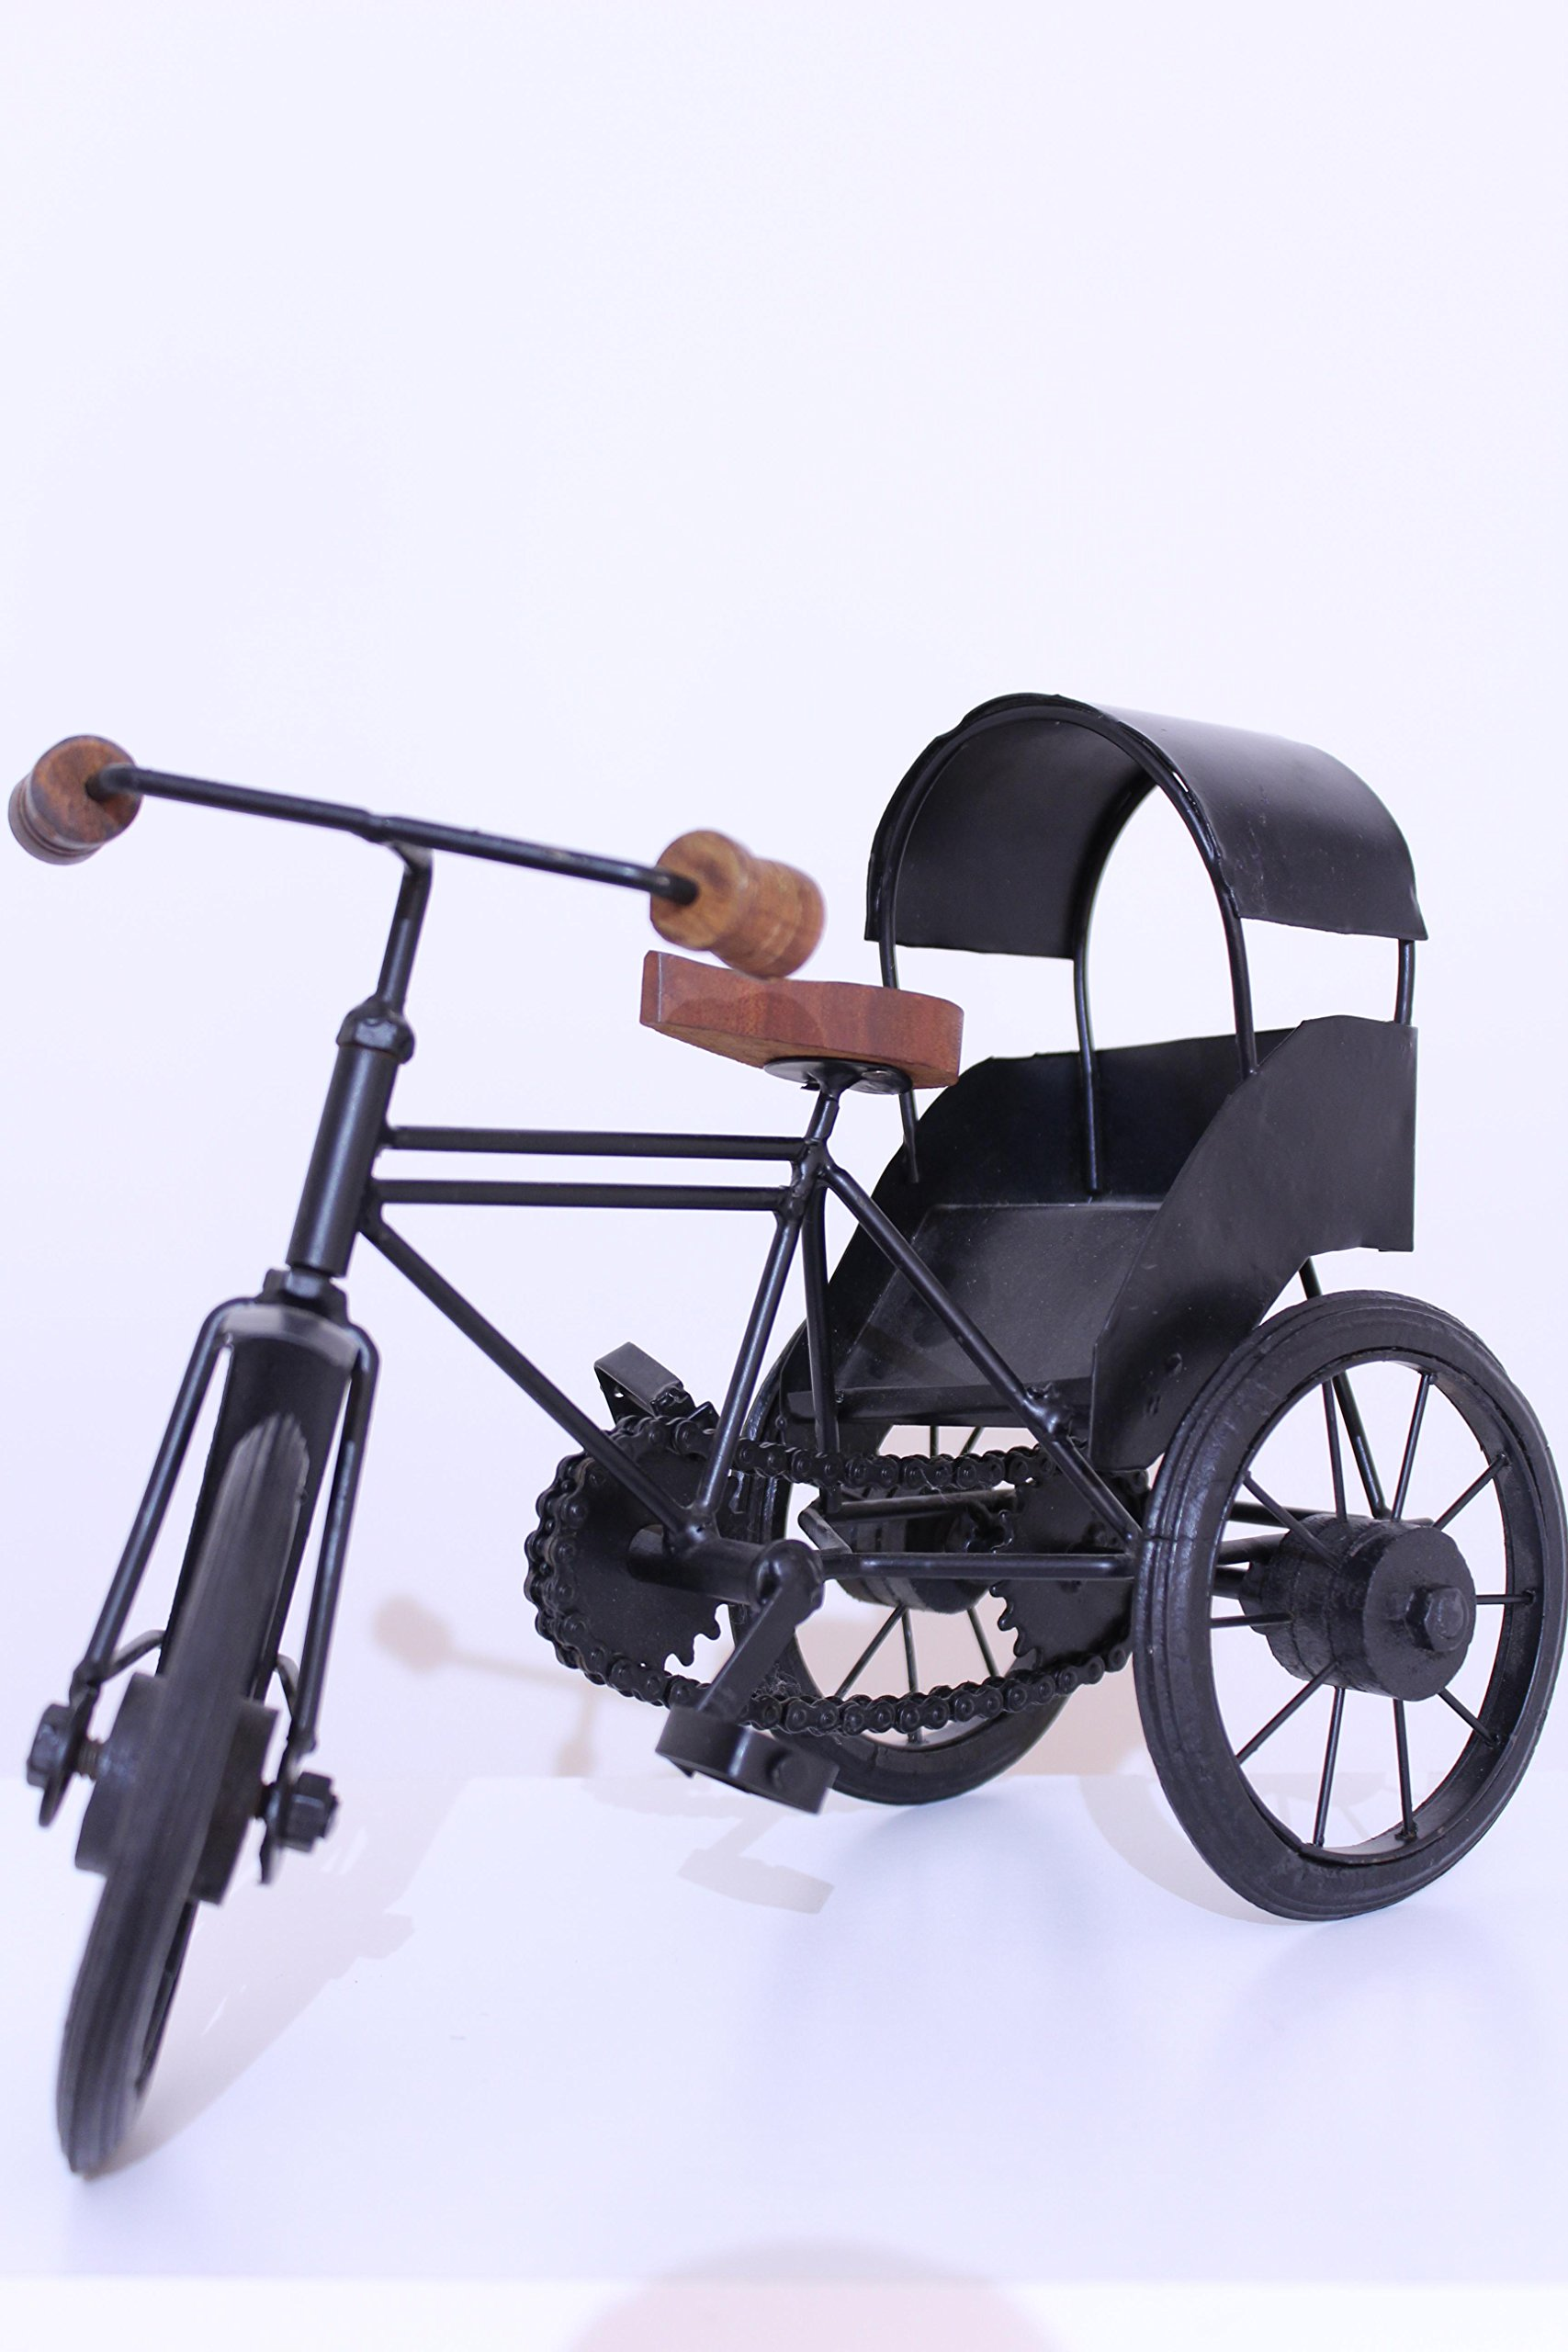 Reminiscent Miniature Bicycles Metal Functional Decorative Gift